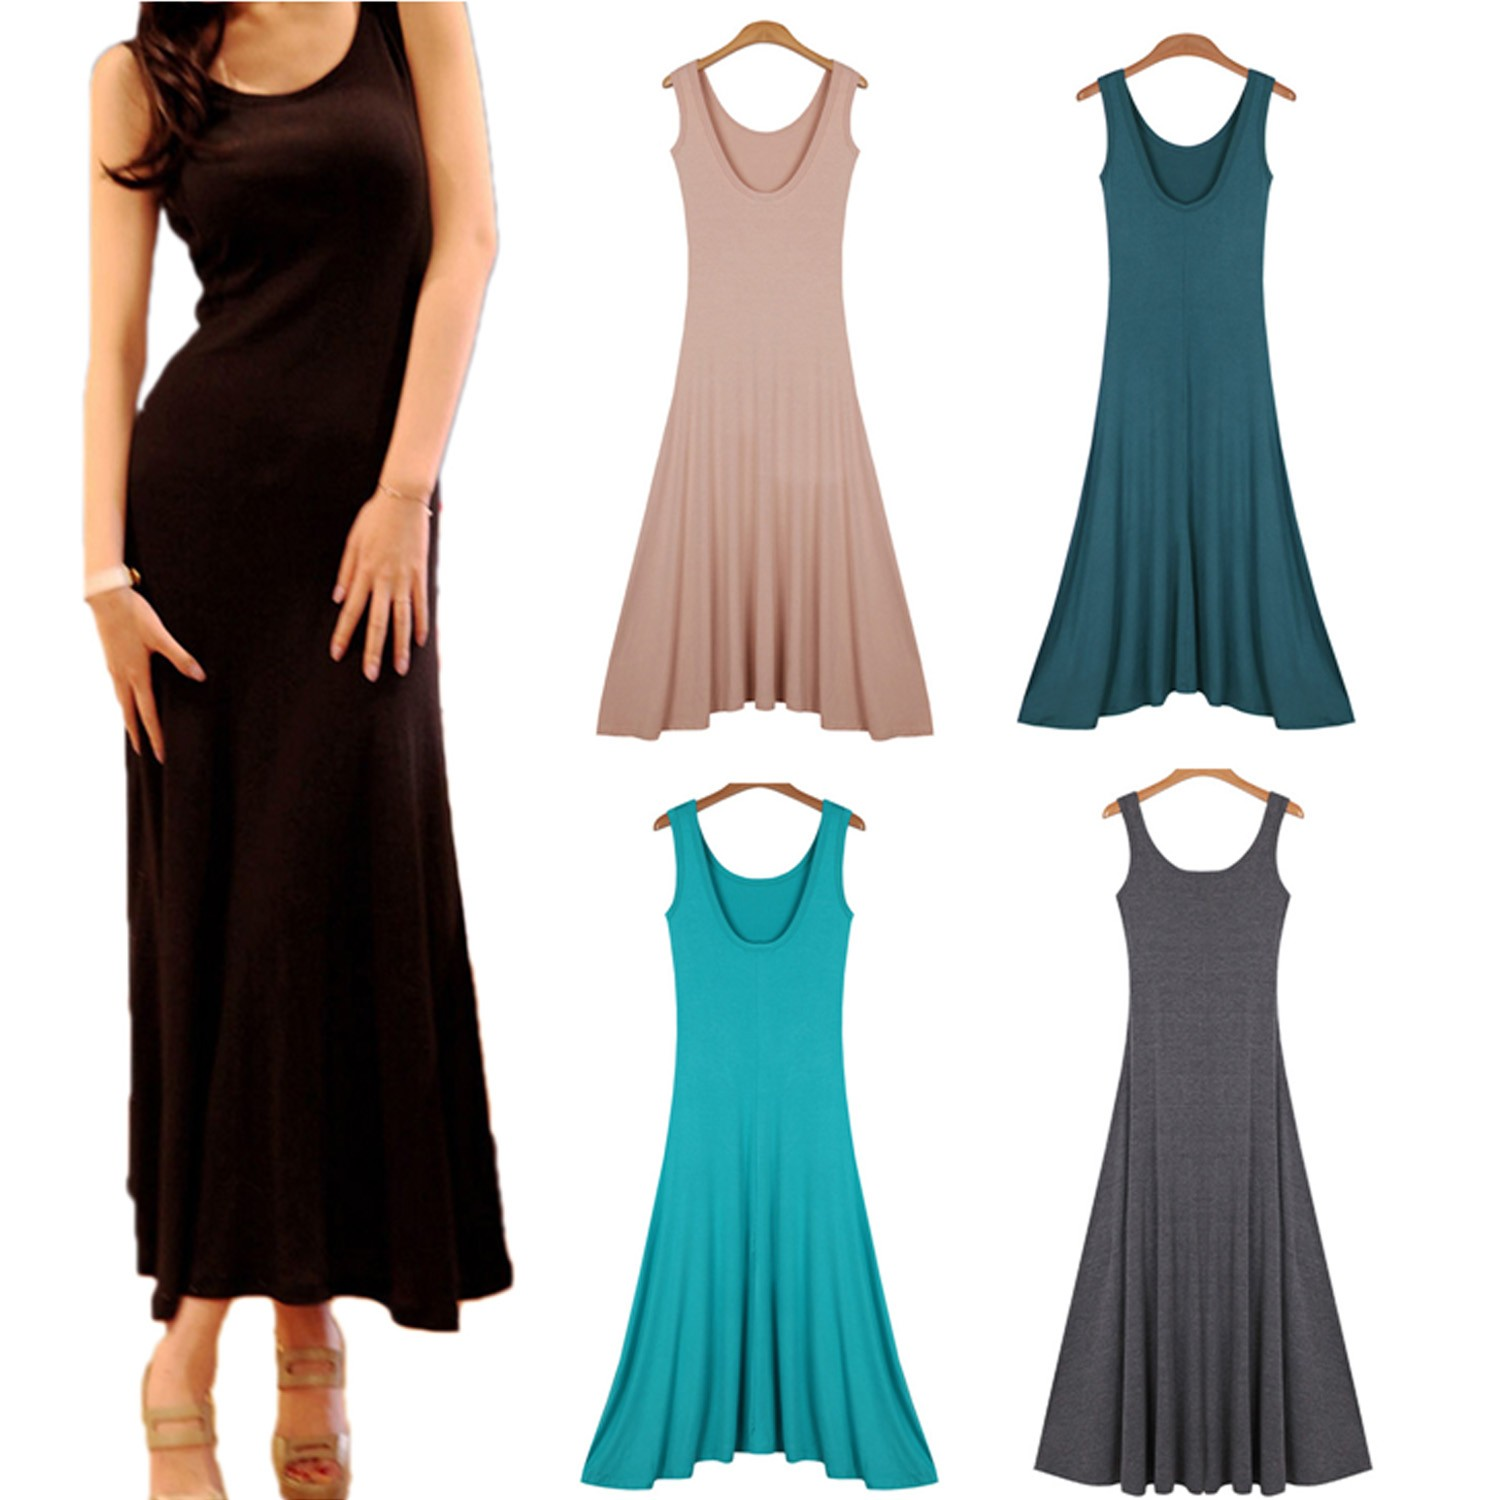 Backless Maxi Long Tank Slip Dress - 3081#